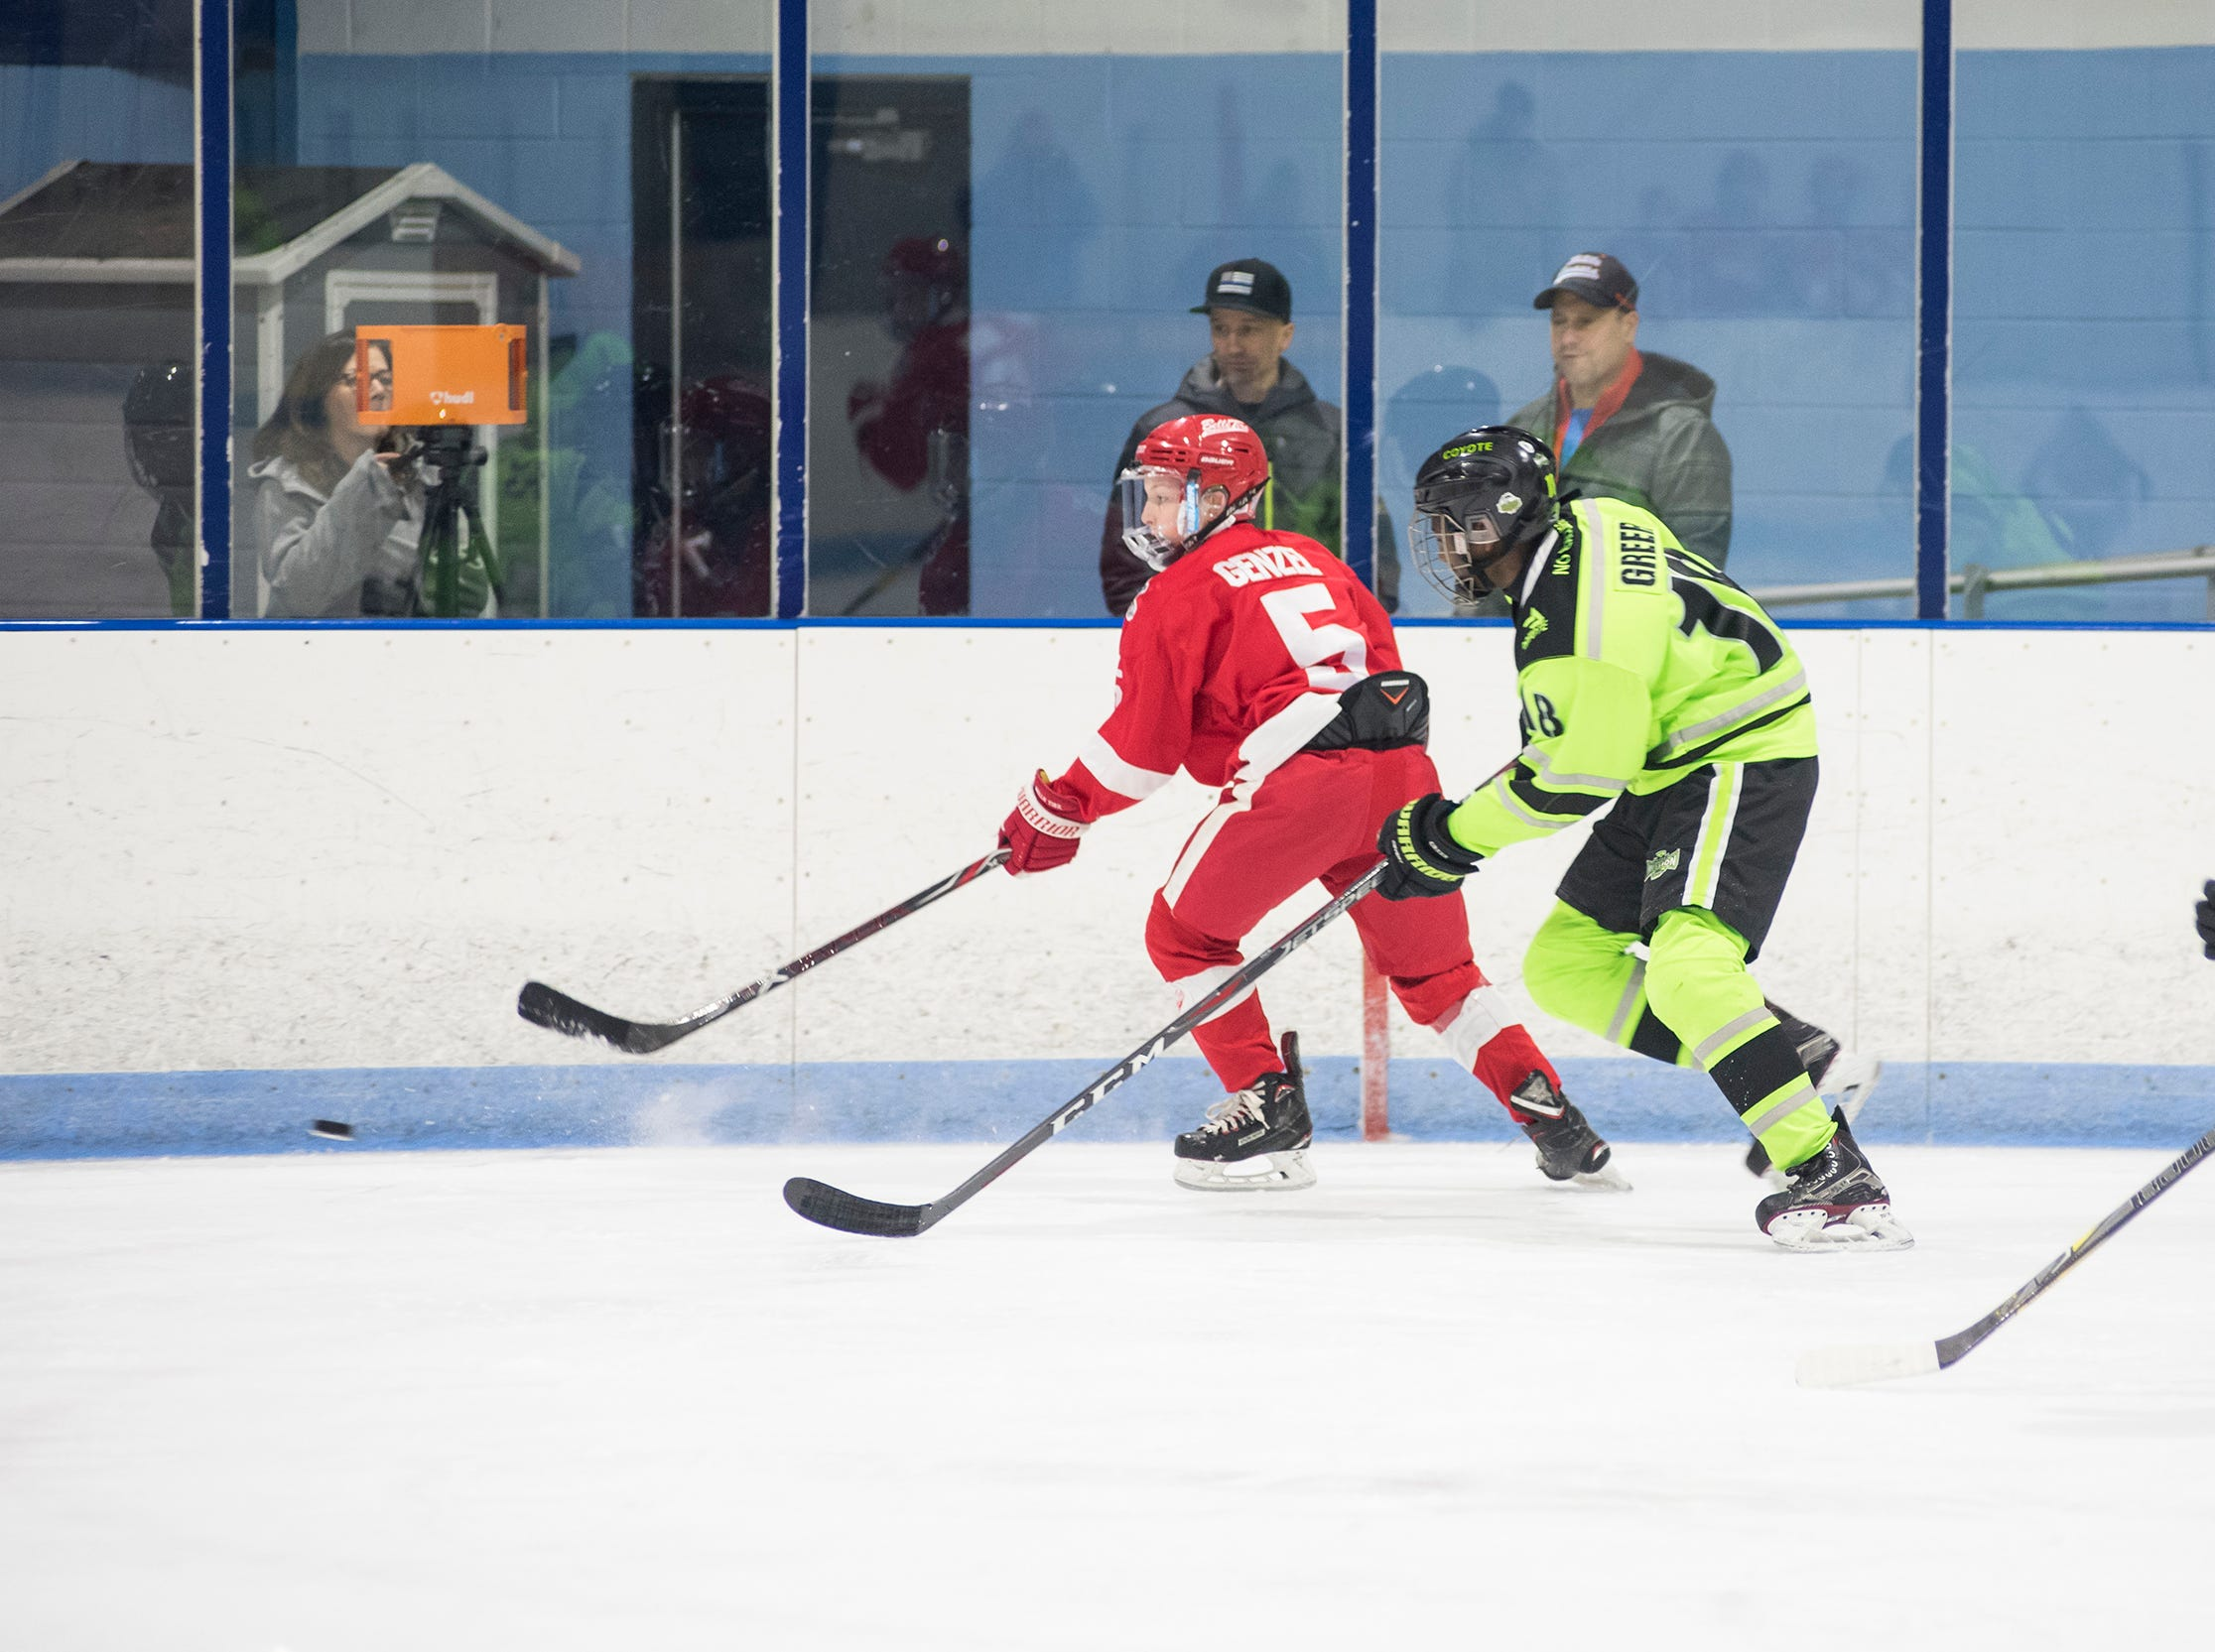 Chicago Mission forward John Greer (18) and Detroit Belle Tire defenseman Justin Genzel chase the puck during their PAAA-B Silver Stick Finals match Saturday, Jan. 5, 2019 at Glacier Pointe Ice Complex.